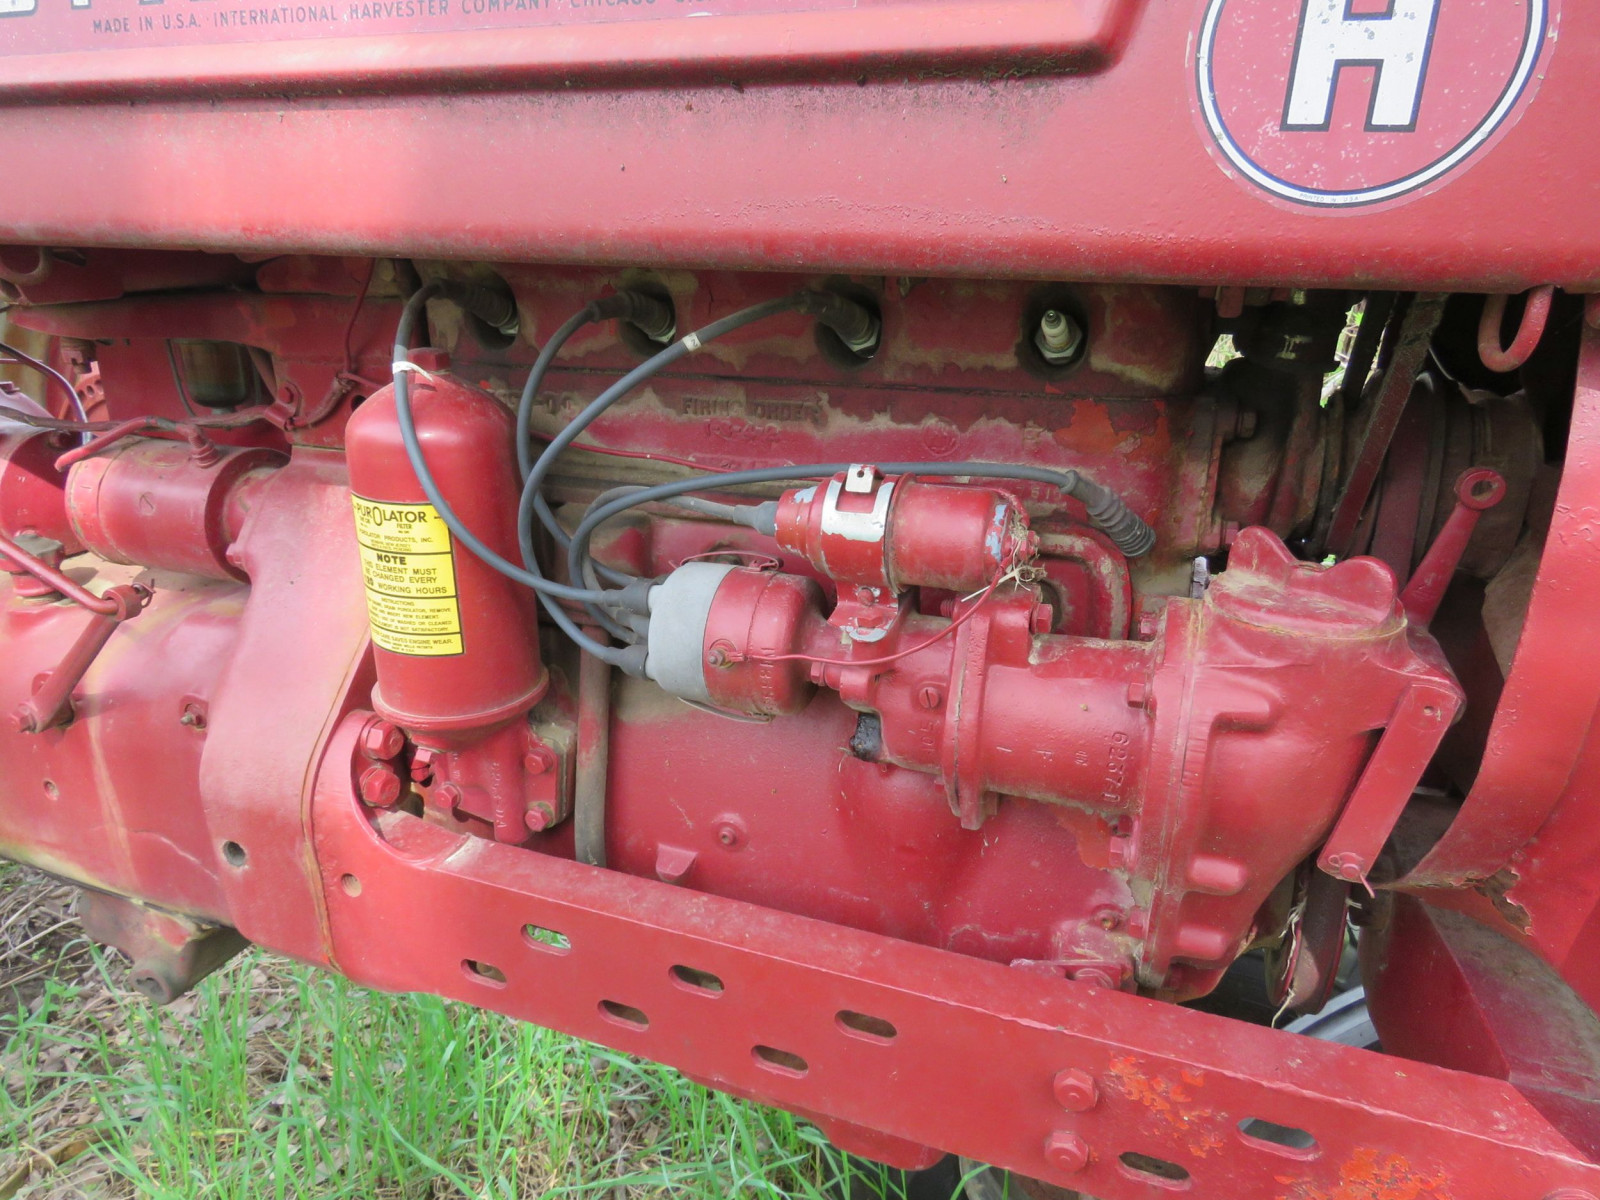 Farmall H Antique Tractor - Image 2